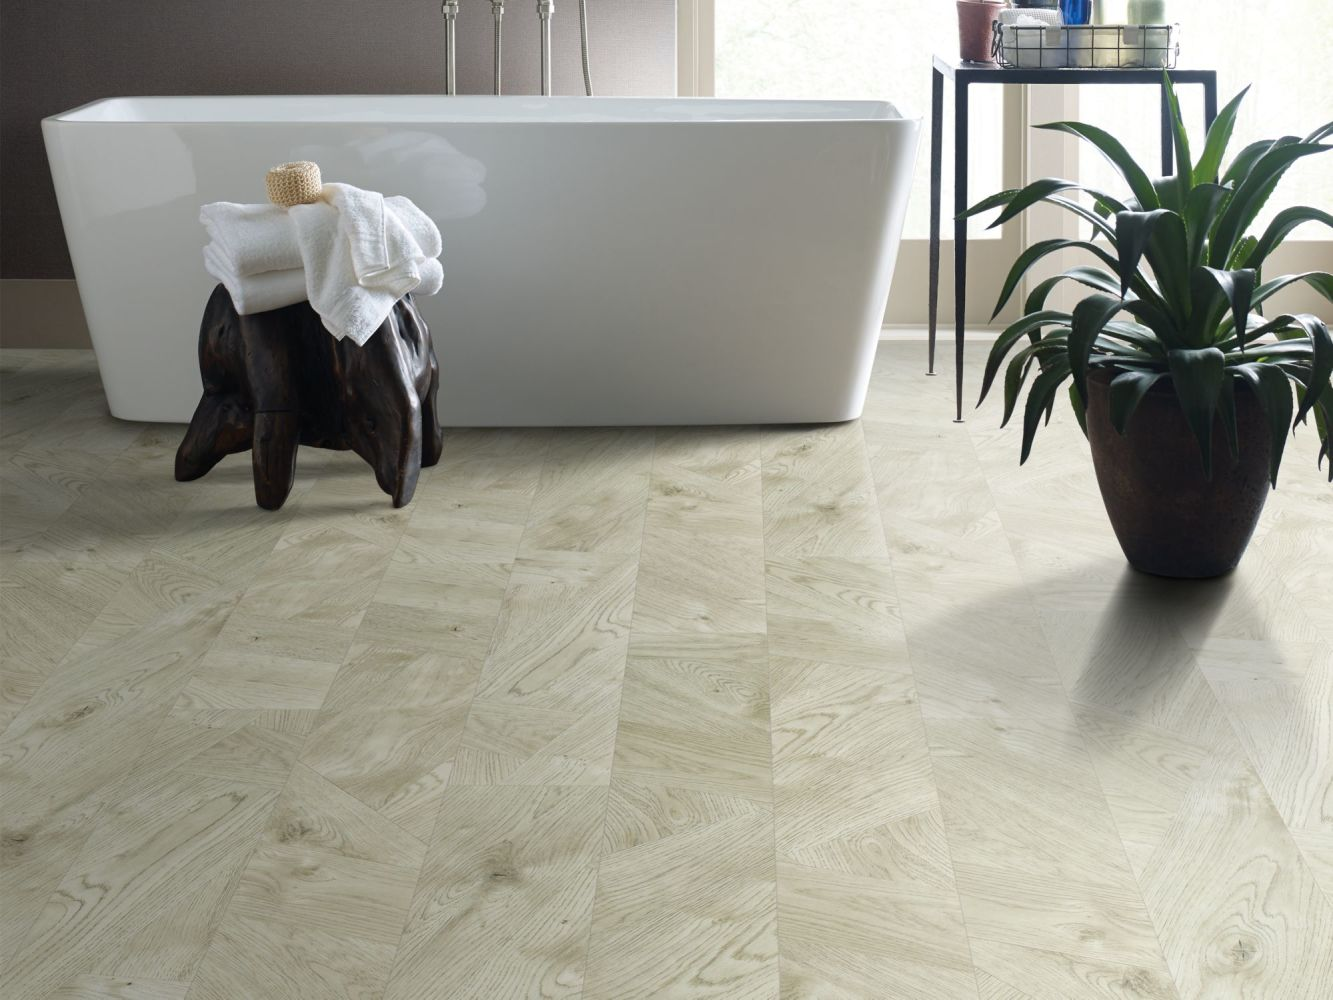 Shaw Floors Resilient Residential Tenacious Hd+ Milled Bazaar Ginger 01054_3010V